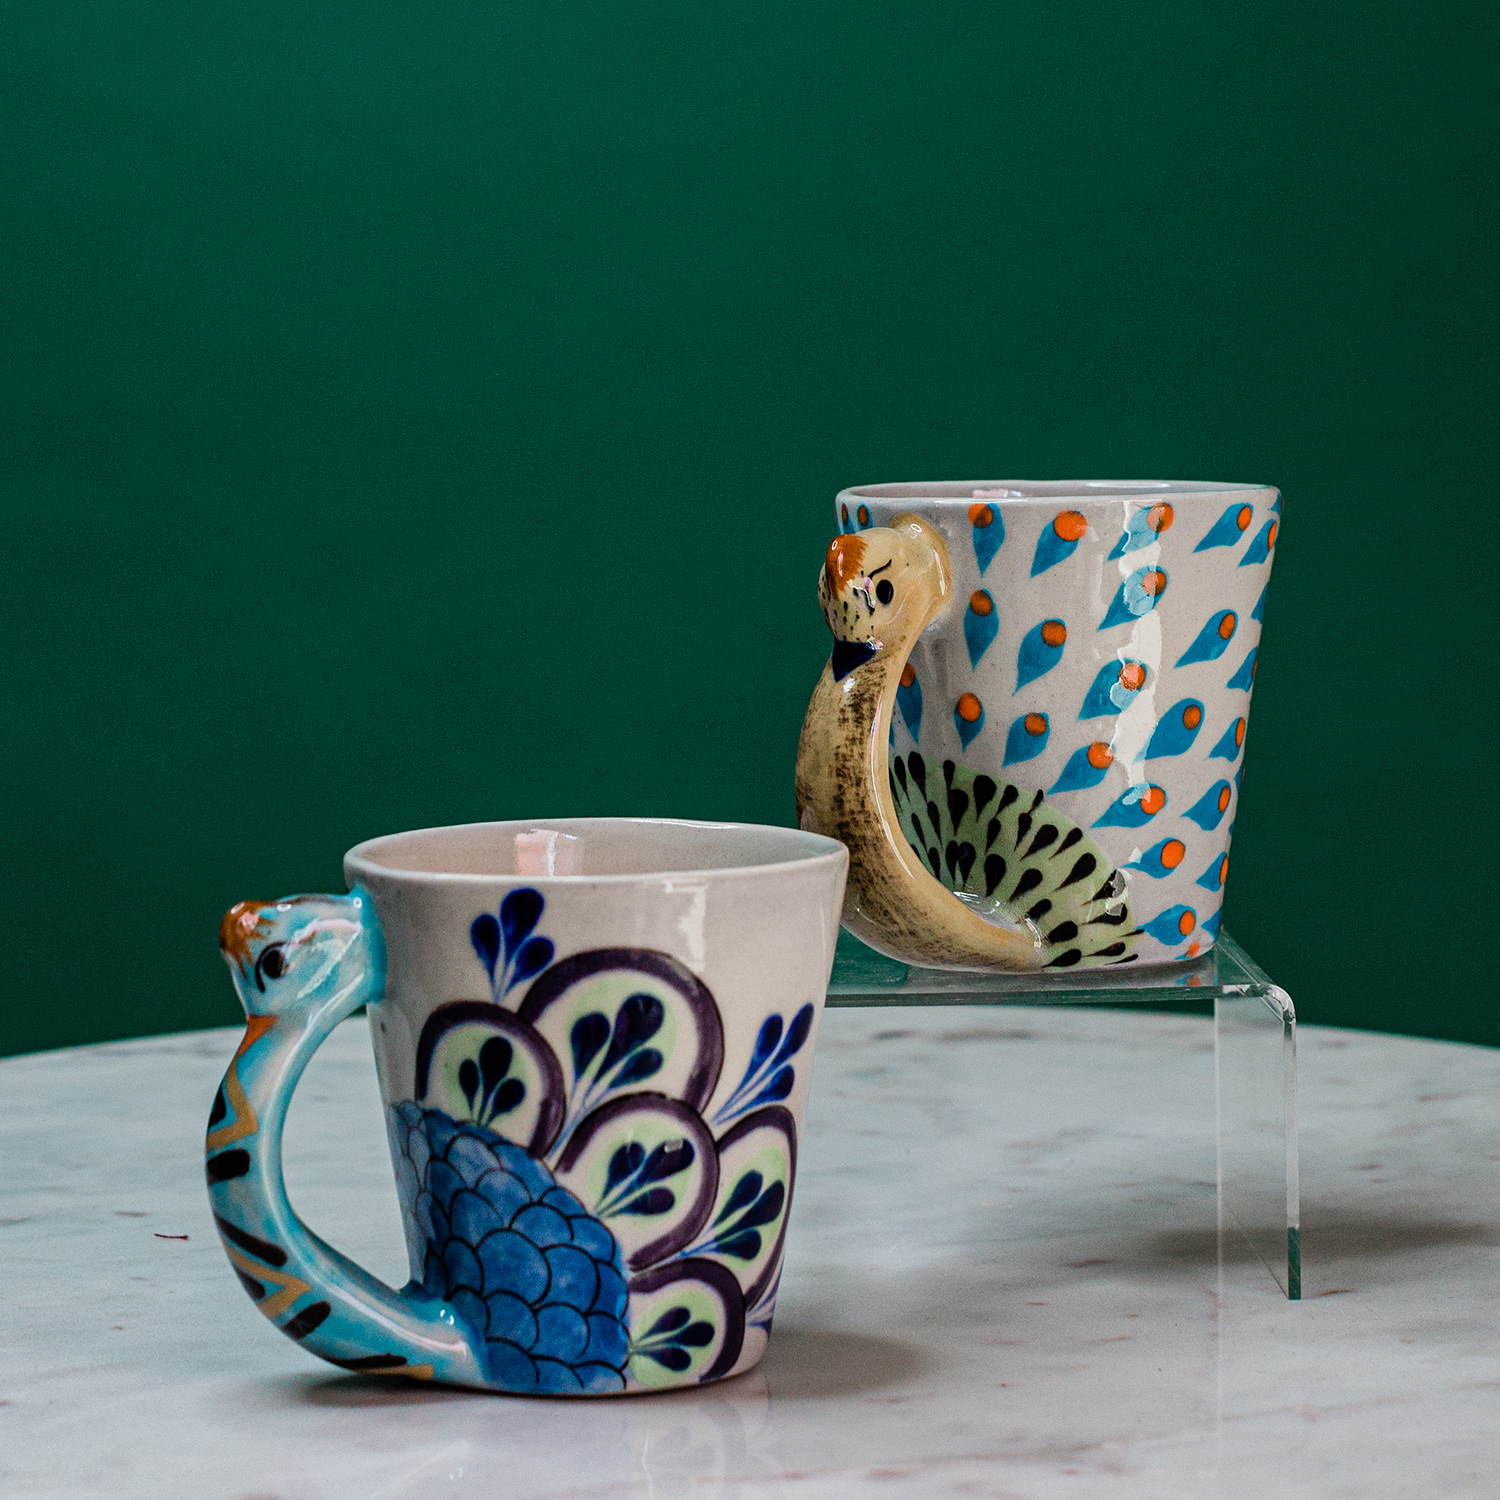 Pavo Real Coffee Mug Home Goods Handmade Guatemalan Imports